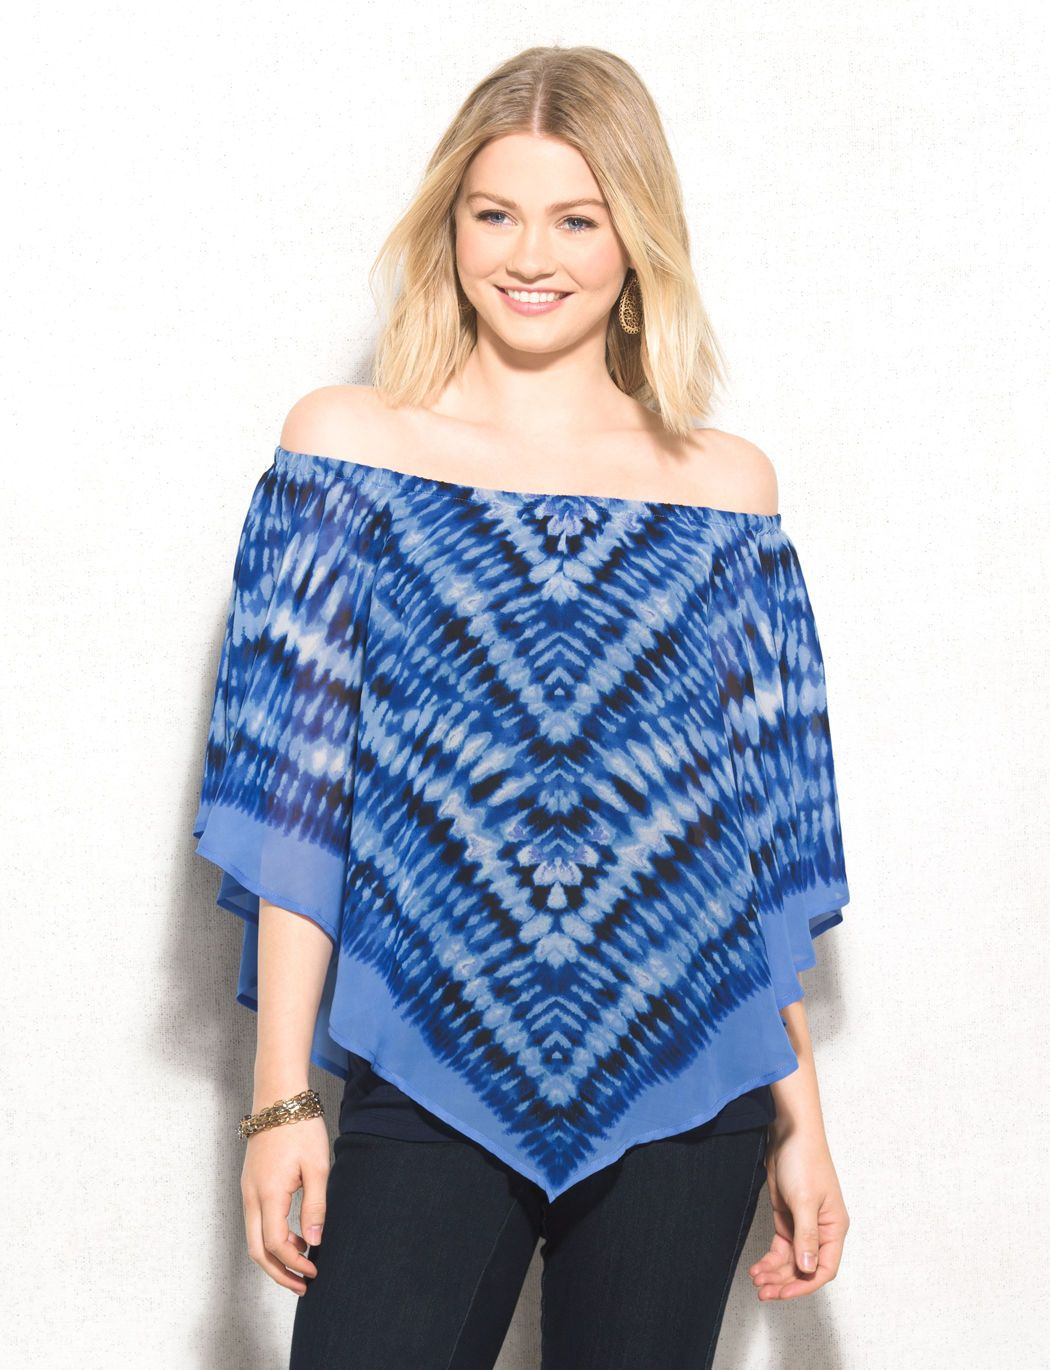 If you're heading out with the girls, then this is the poncho you need to wear! Pair with your darkish wash denim, a bold lip and a few dazzling bangles for a show-stopping look you and your friends will love.  #tops #offtheshoulder #blouse #top #dressbarn